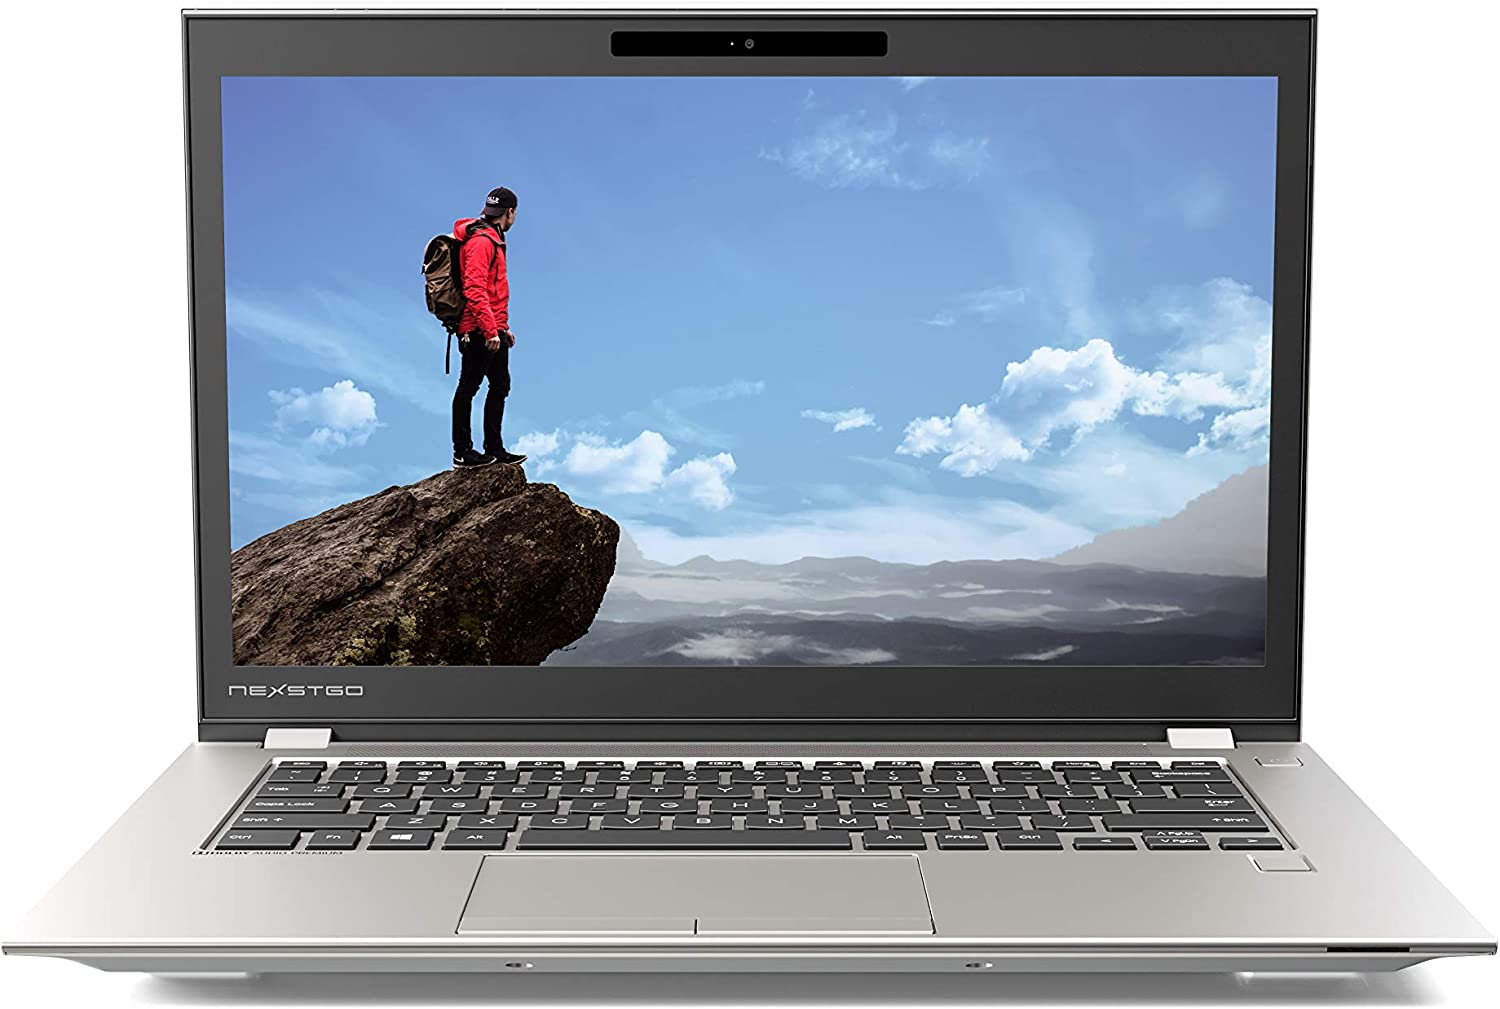 Laptops and Accessories | Clearance Store -Upto 65% Off | Deals starting from